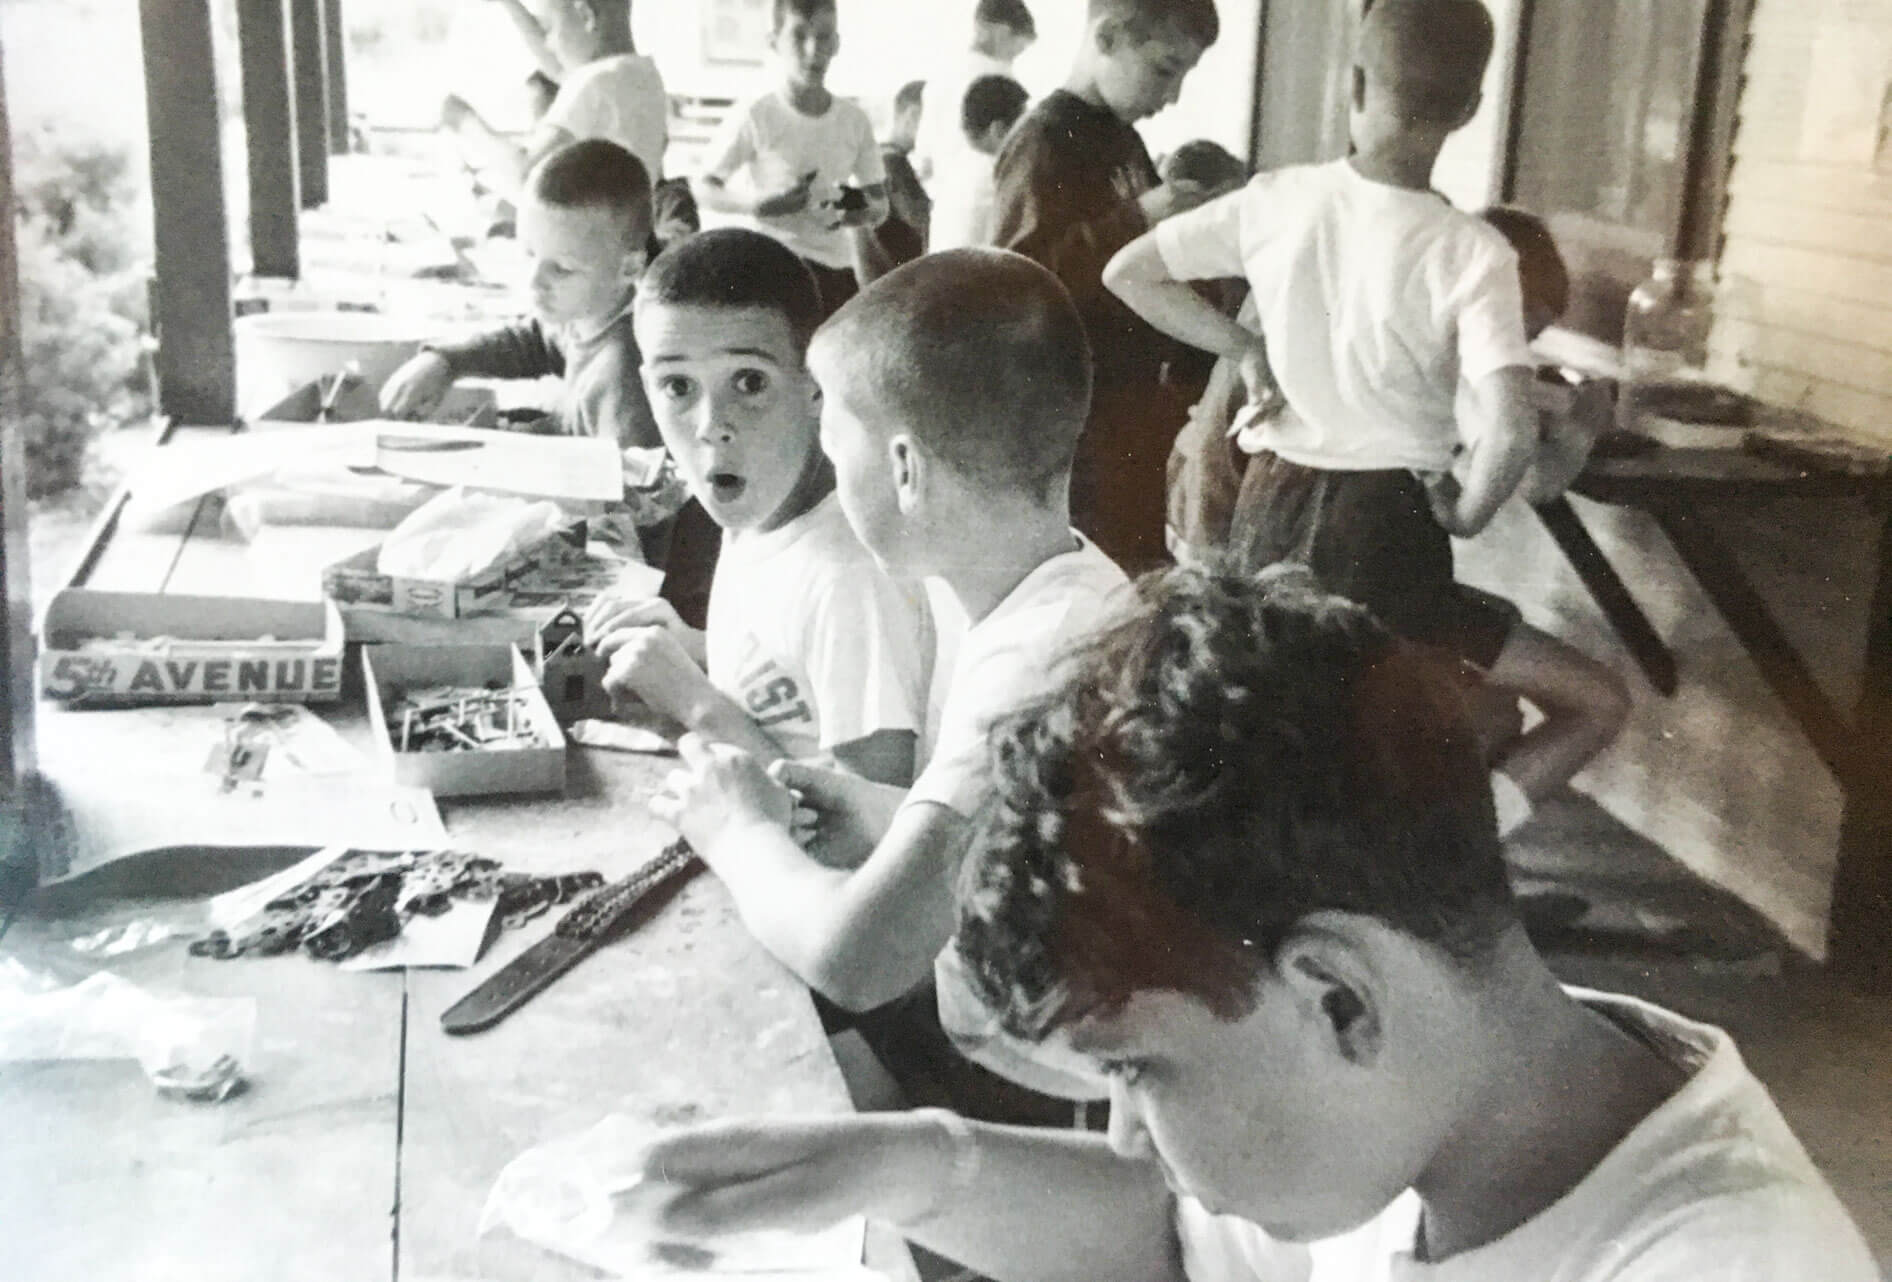 Black and white photo of campers doing crafts